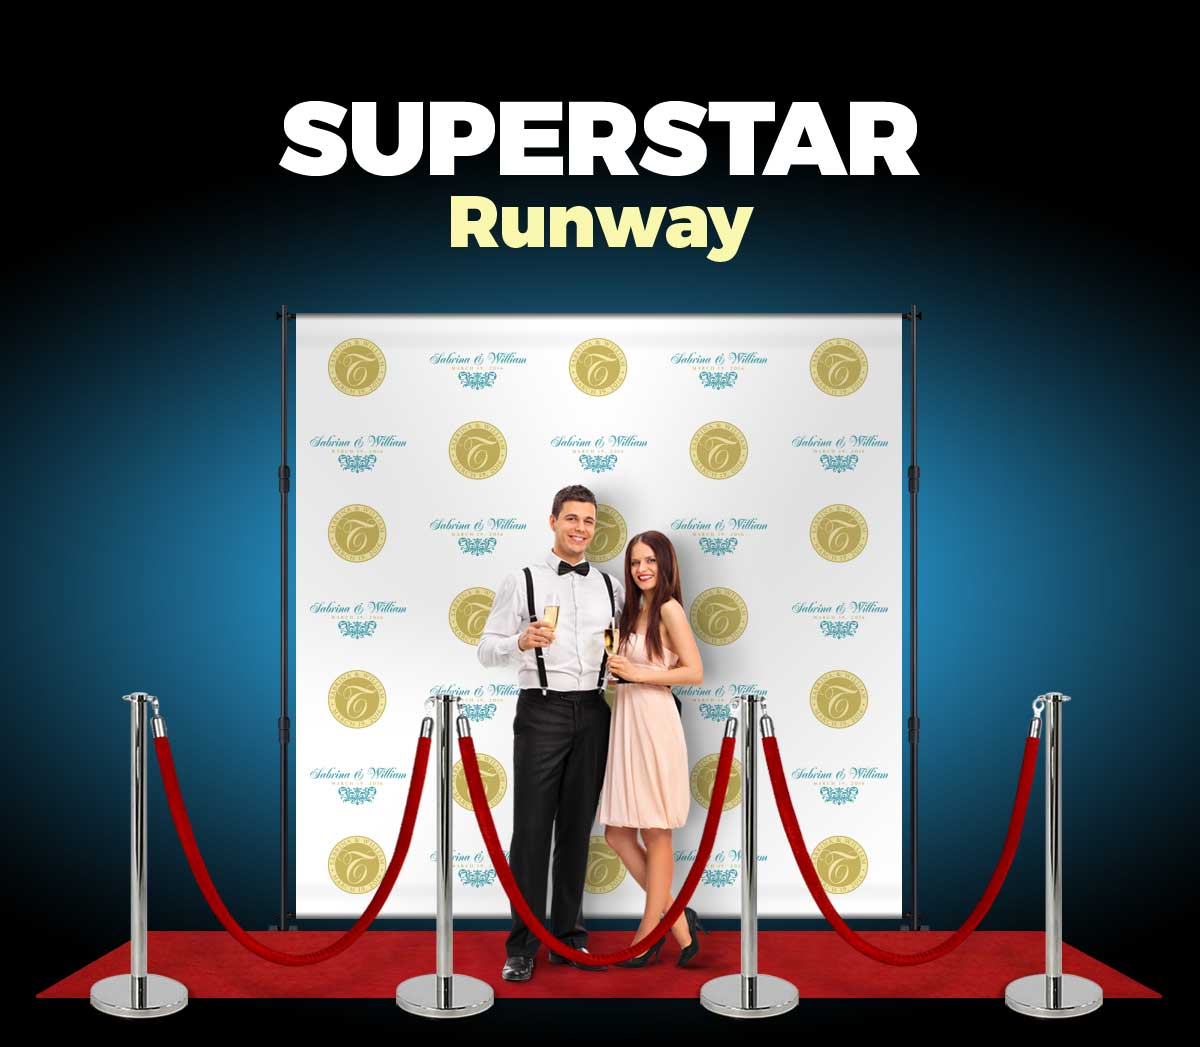 Superstar Runway